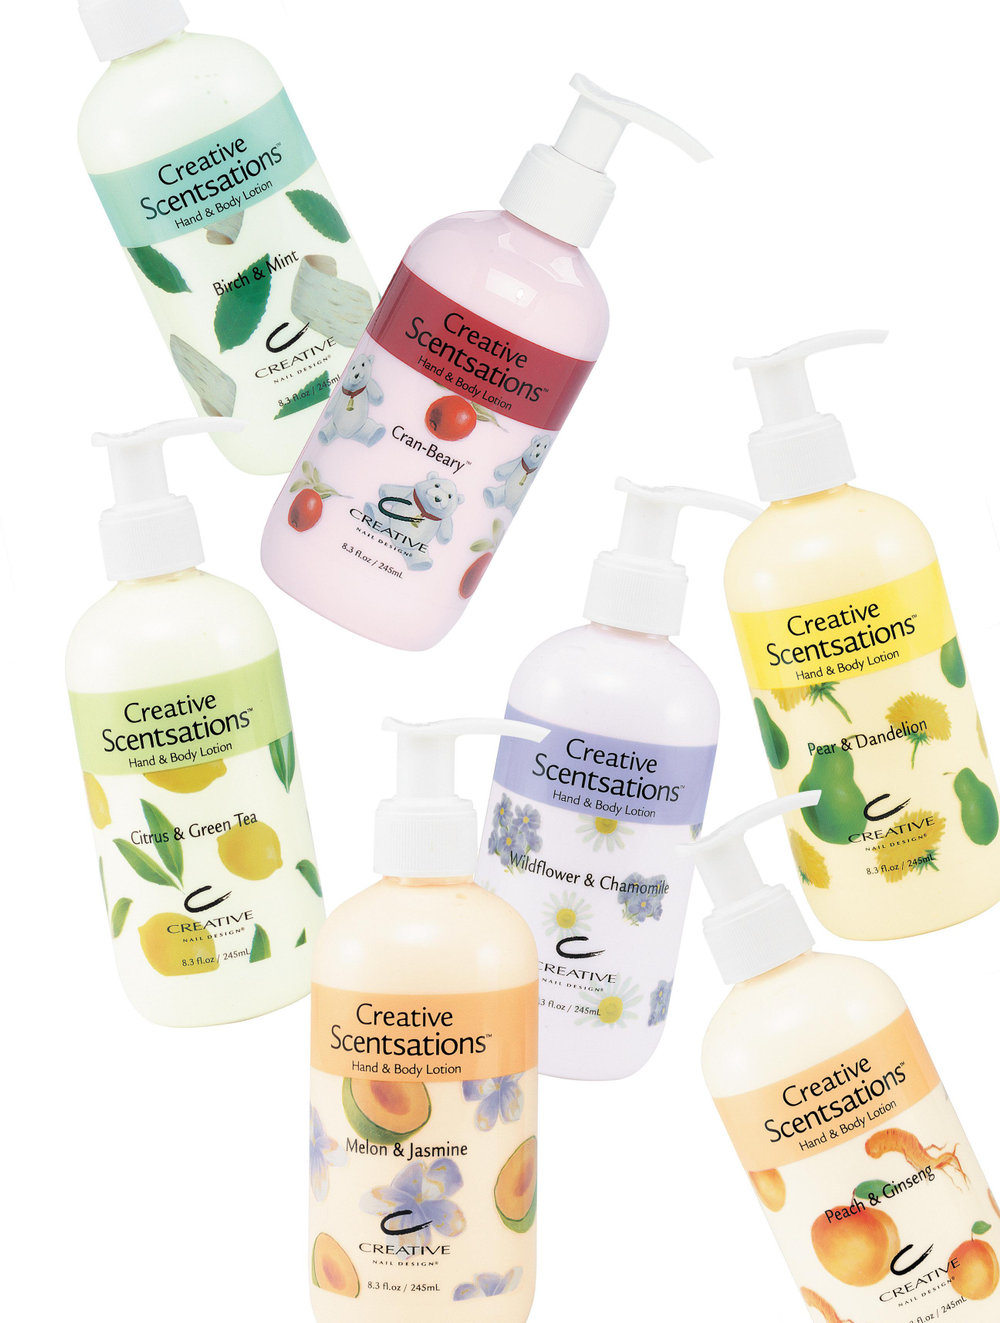 <p><strong>2004 Favorite Lotion for Hands and Body: Creative Nail Design Scentsations Hand and Body Lotions</strong></p> <p>2nd: Creative Nail Design Solar Butter; 3rd: OPI Avojuice; 4th: Creative Nail Design Solar Silk; 5th: OPI Avoplex Moisture Replenishing Lotion</p>